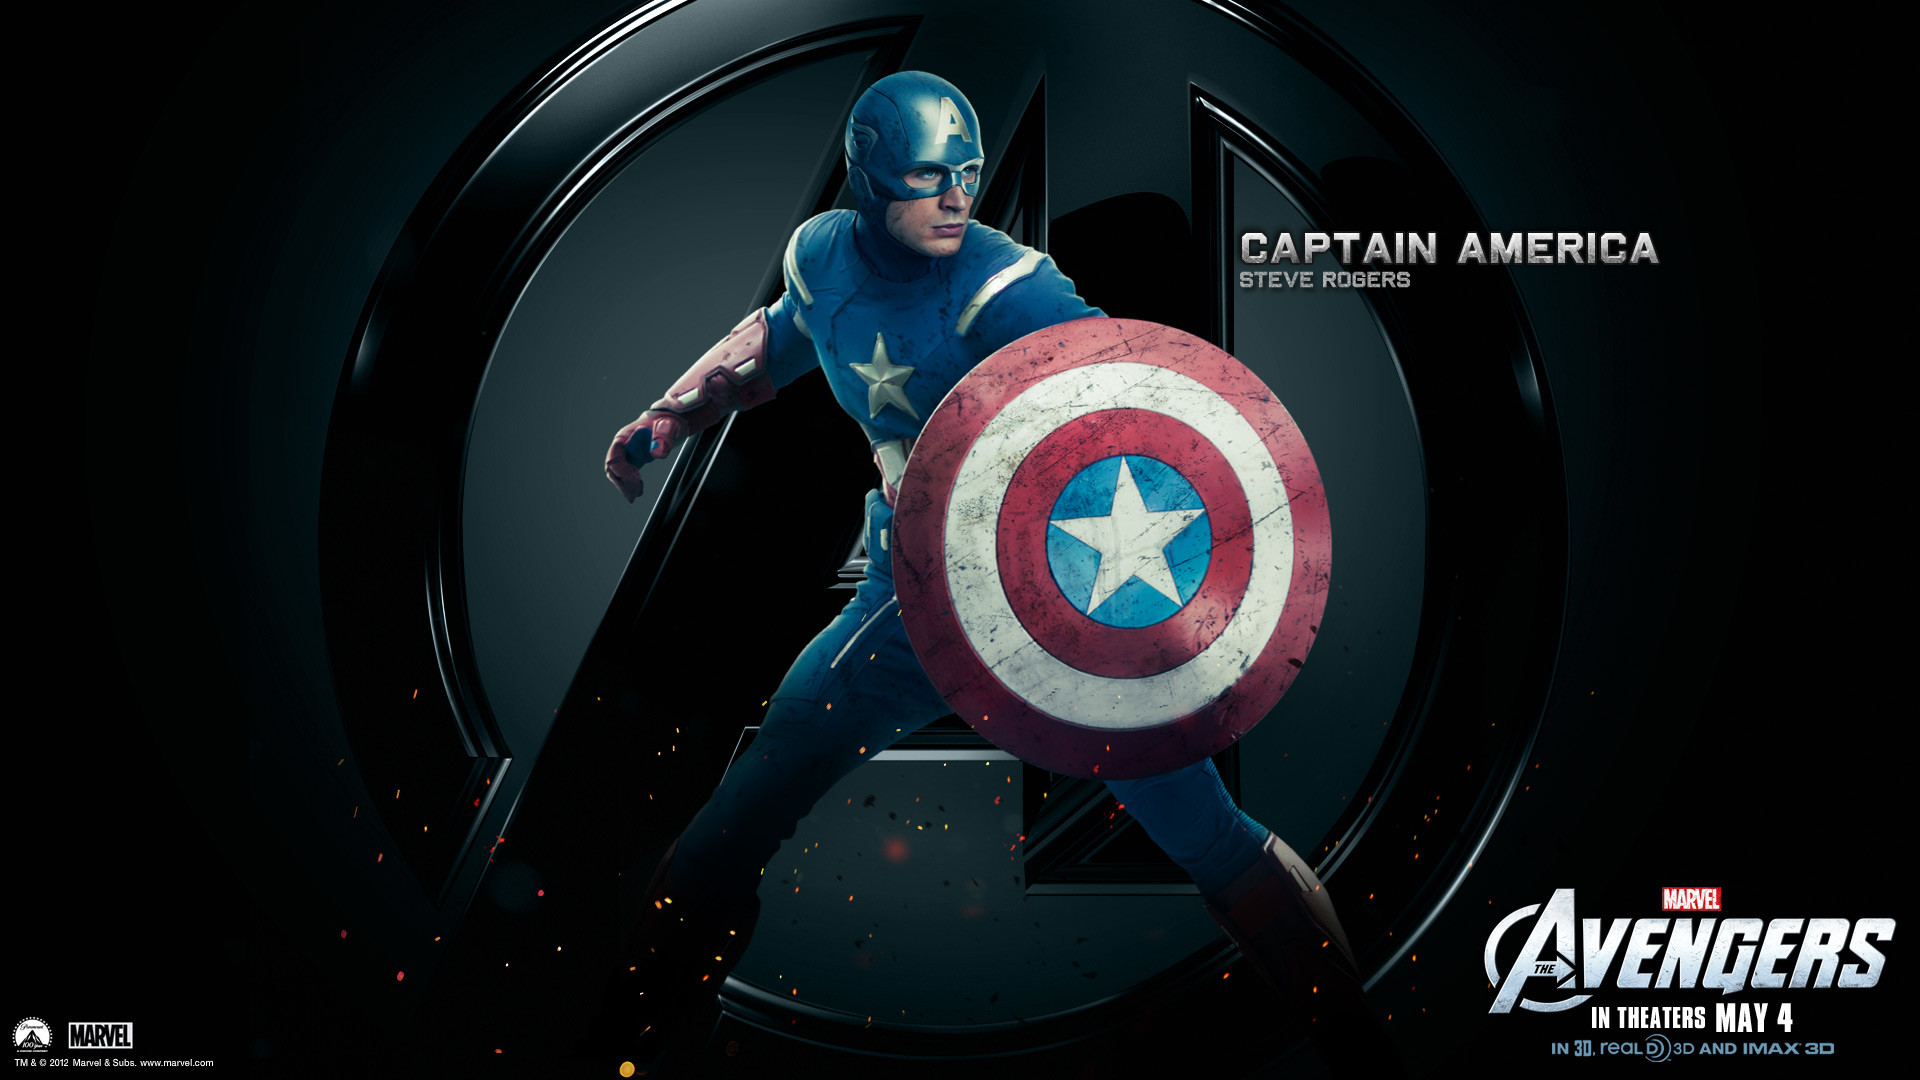 1920x1080 Marvel-The-Avengers-Movie-2012-HD-Wallpaper-Captain-